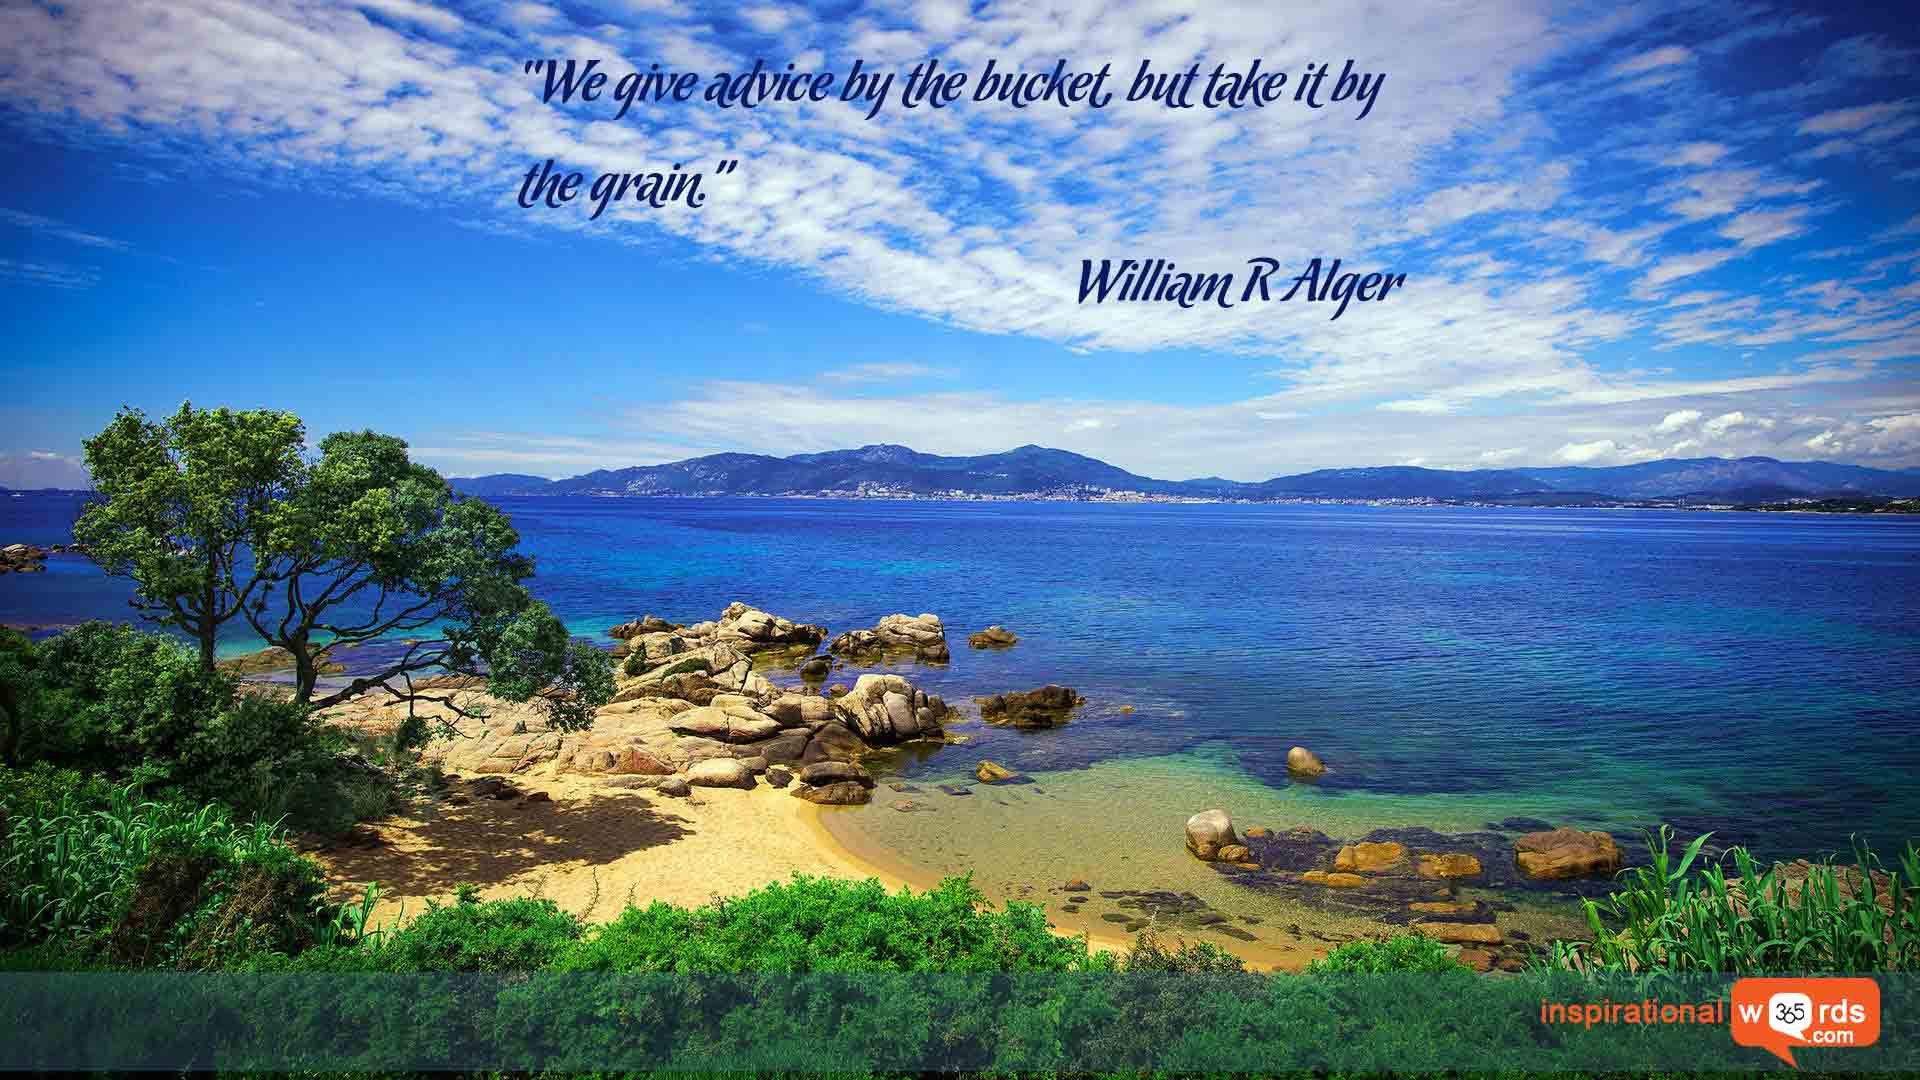 Inspirational Wallpaper Quote by William R Alger